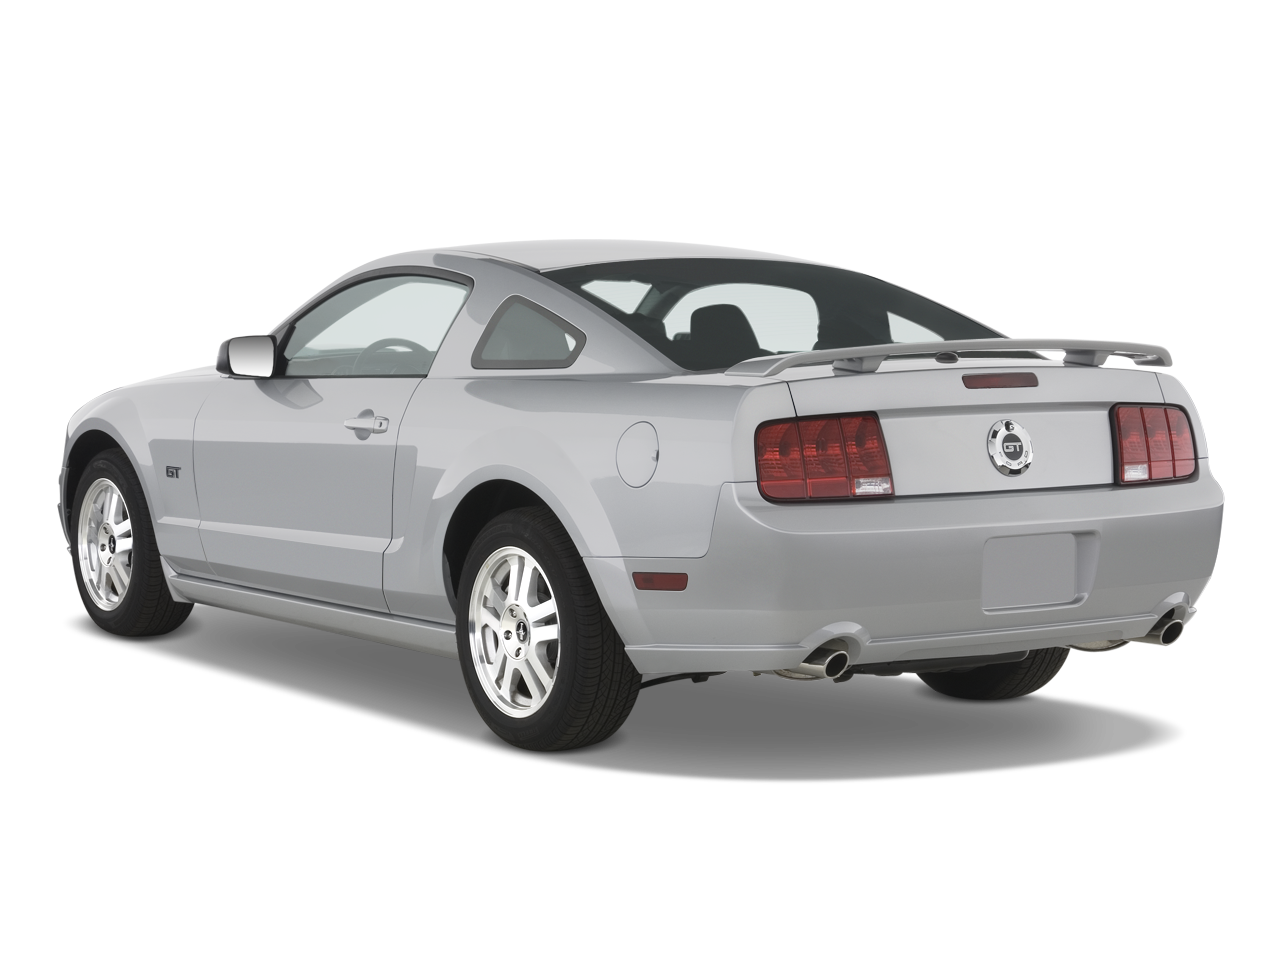 2009 ford mustang gt coupe ford sport coupe review automobile magazine. Black Bedroom Furniture Sets. Home Design Ideas